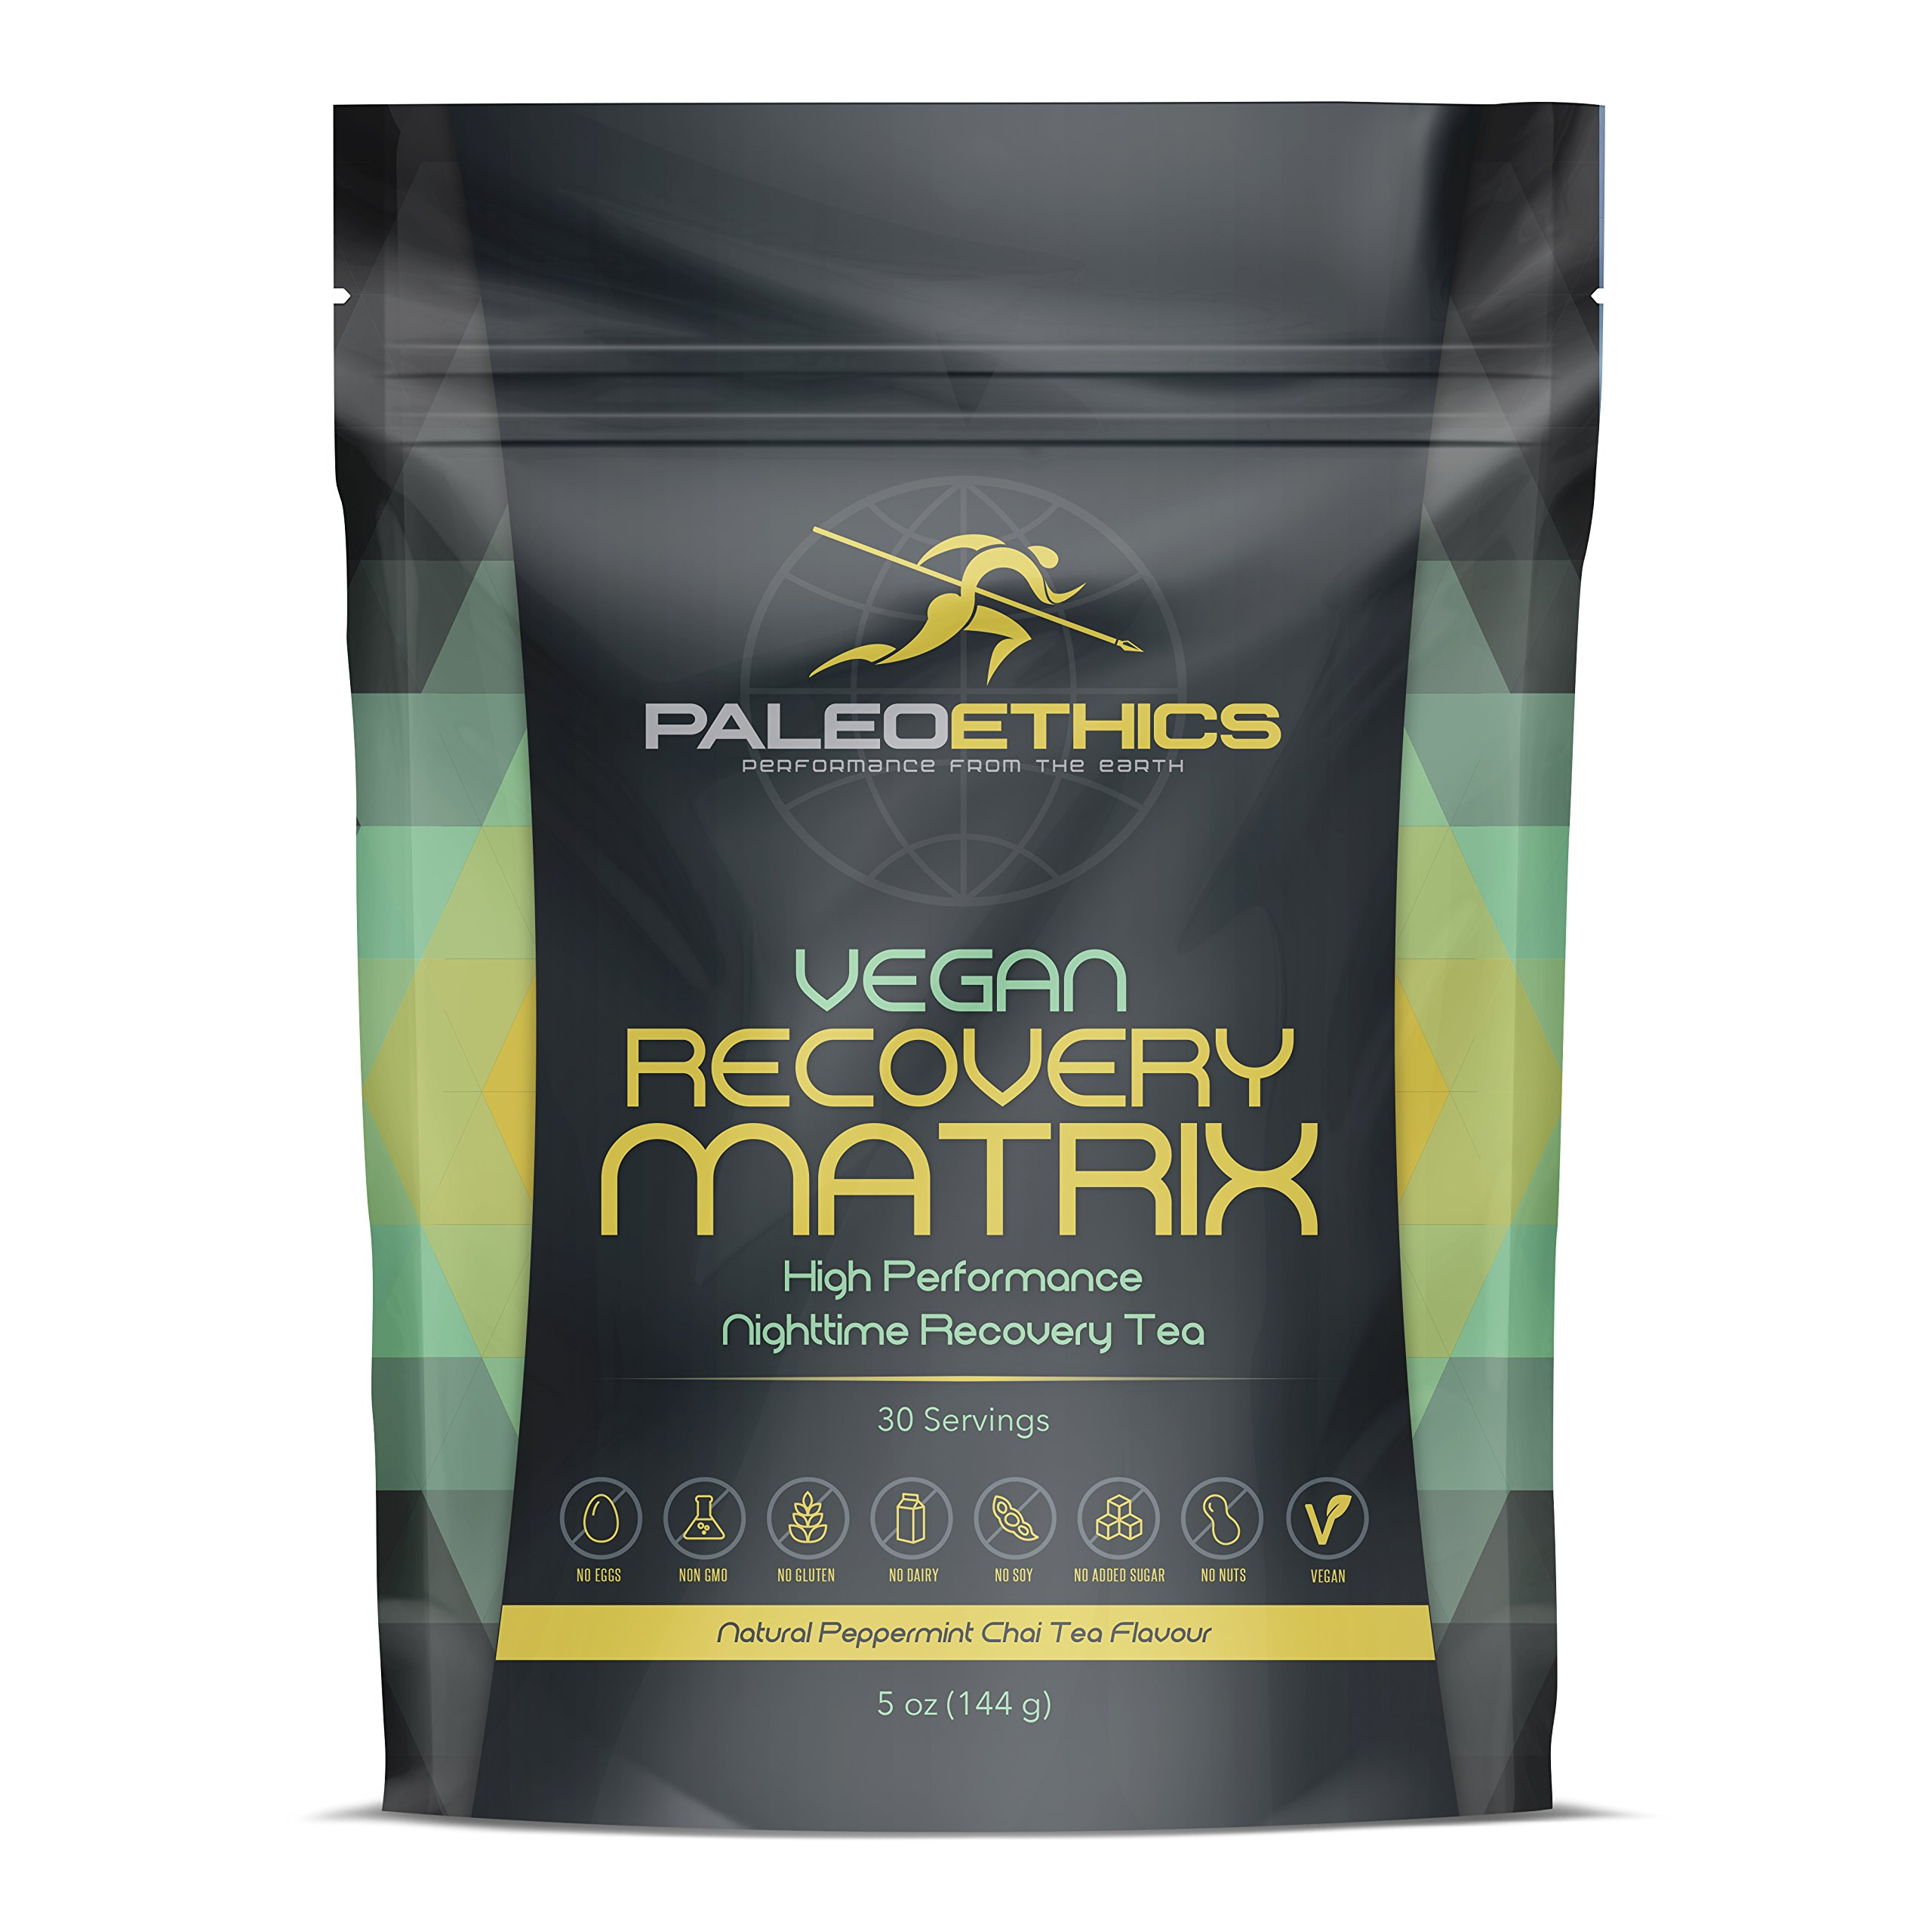 PALEOETHICS Vegan High Performance Recovery Tea Powder, Natural Peppermint Chai Flavor, 5 oz, 144 Gram